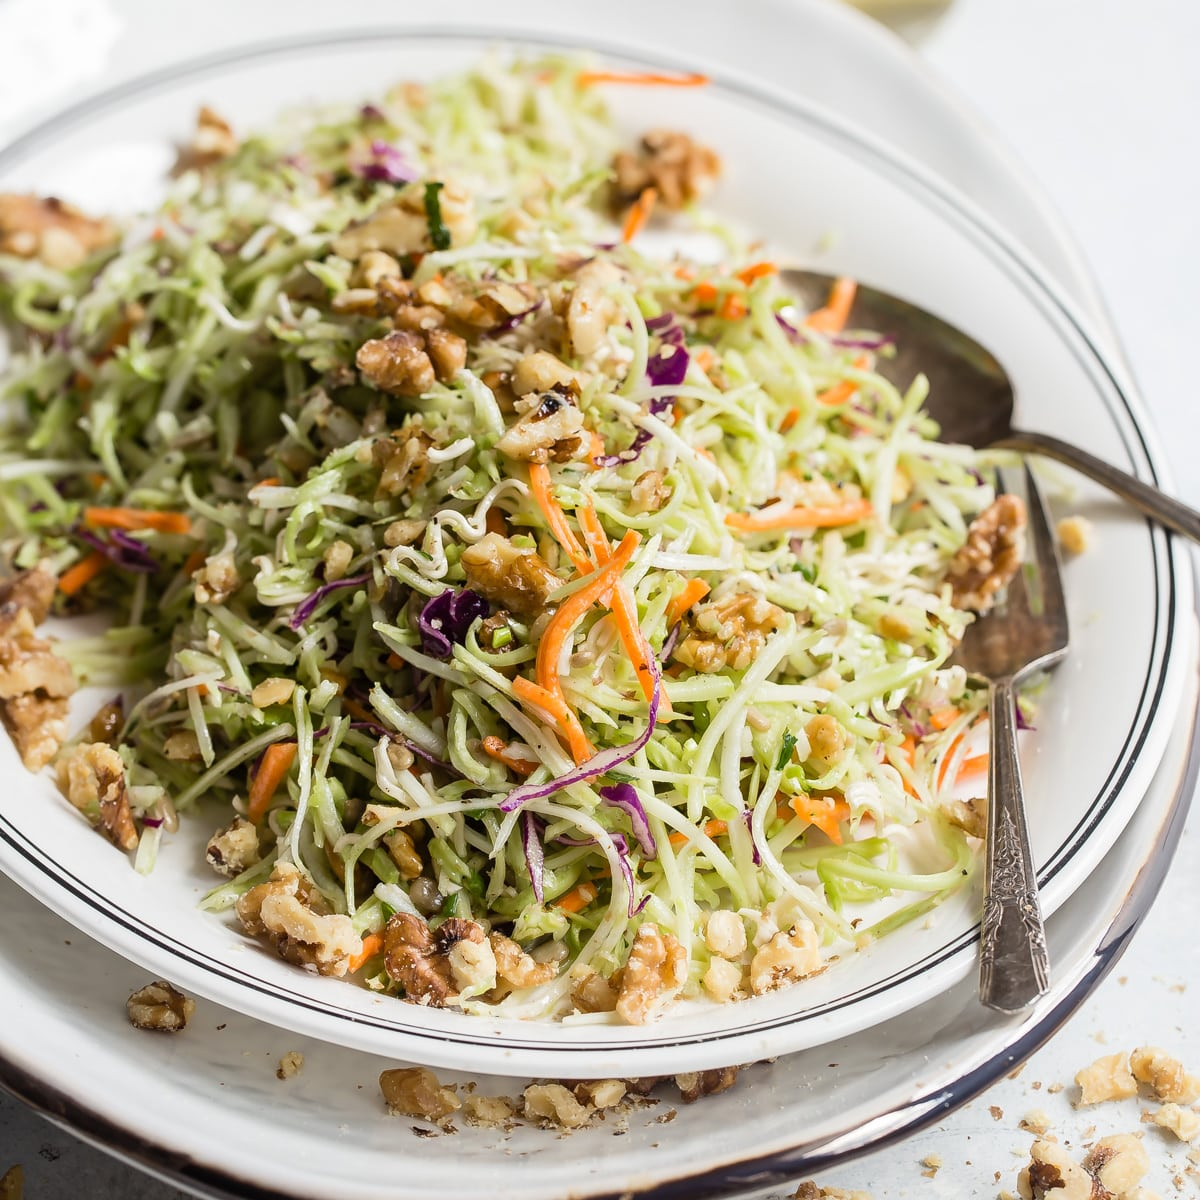 This recipe for Crunchy Broccoli Slaw is fast and easy with just 5 minutes of prep! It's a little sweet, fantastically tangy, and has crunch for days.